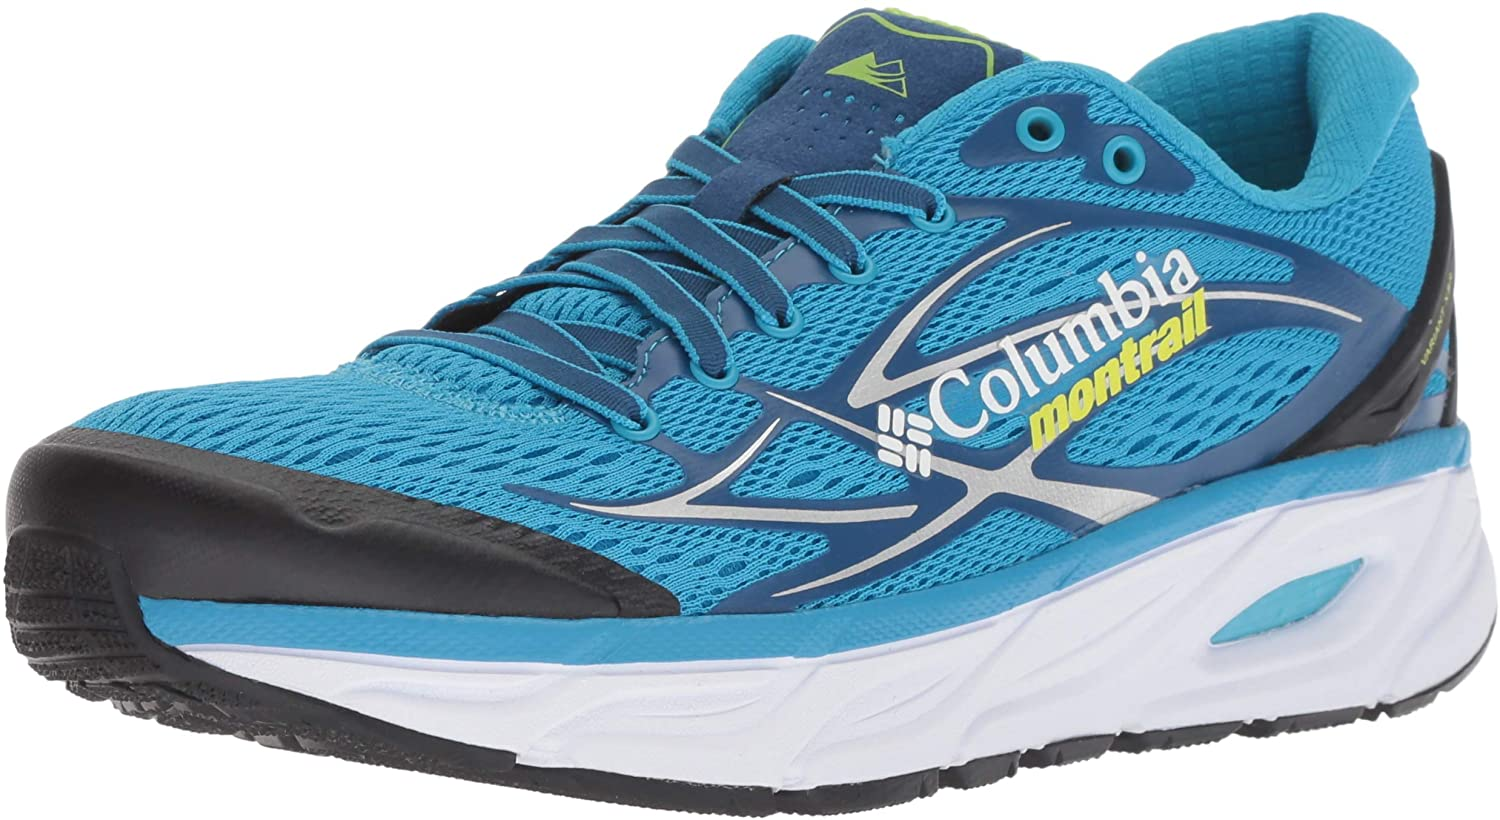 Columbia Men's Variant X.S.R. Trail Running Shoe, Blue chill, Fission, 11.5 D US